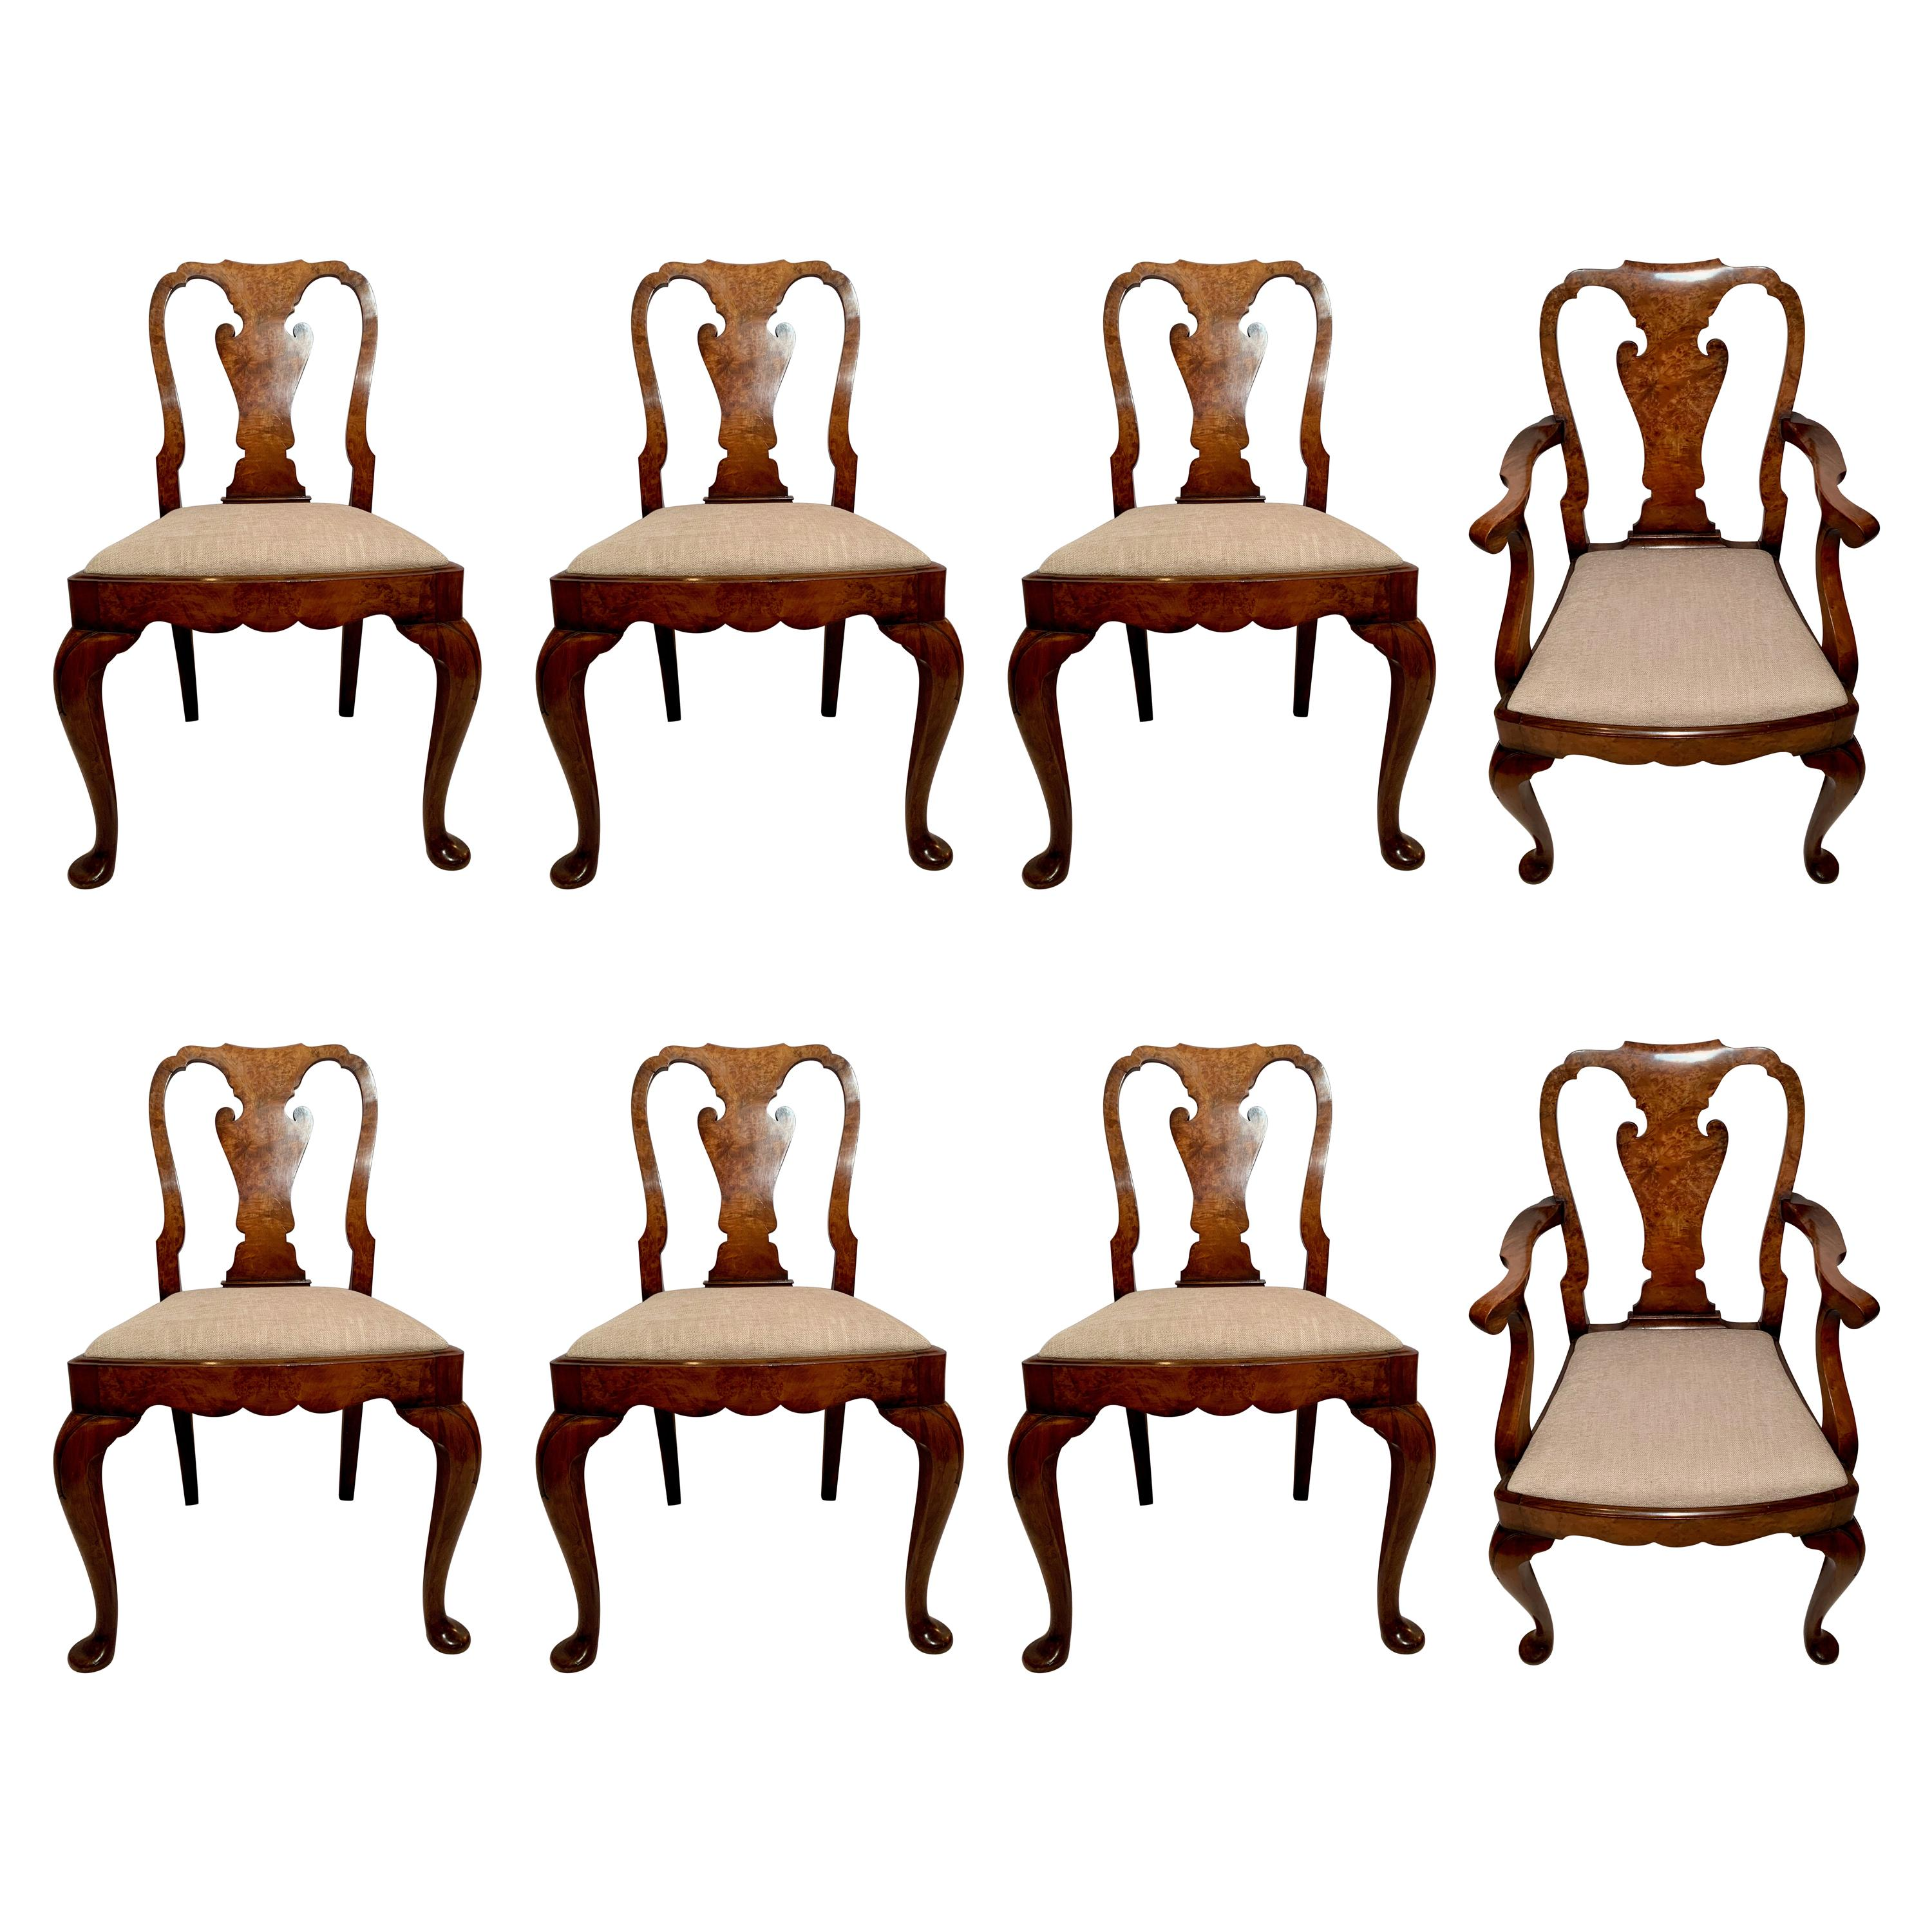 Set of 8 Antique English Queen Anne Burl Walnut Dining Chairs